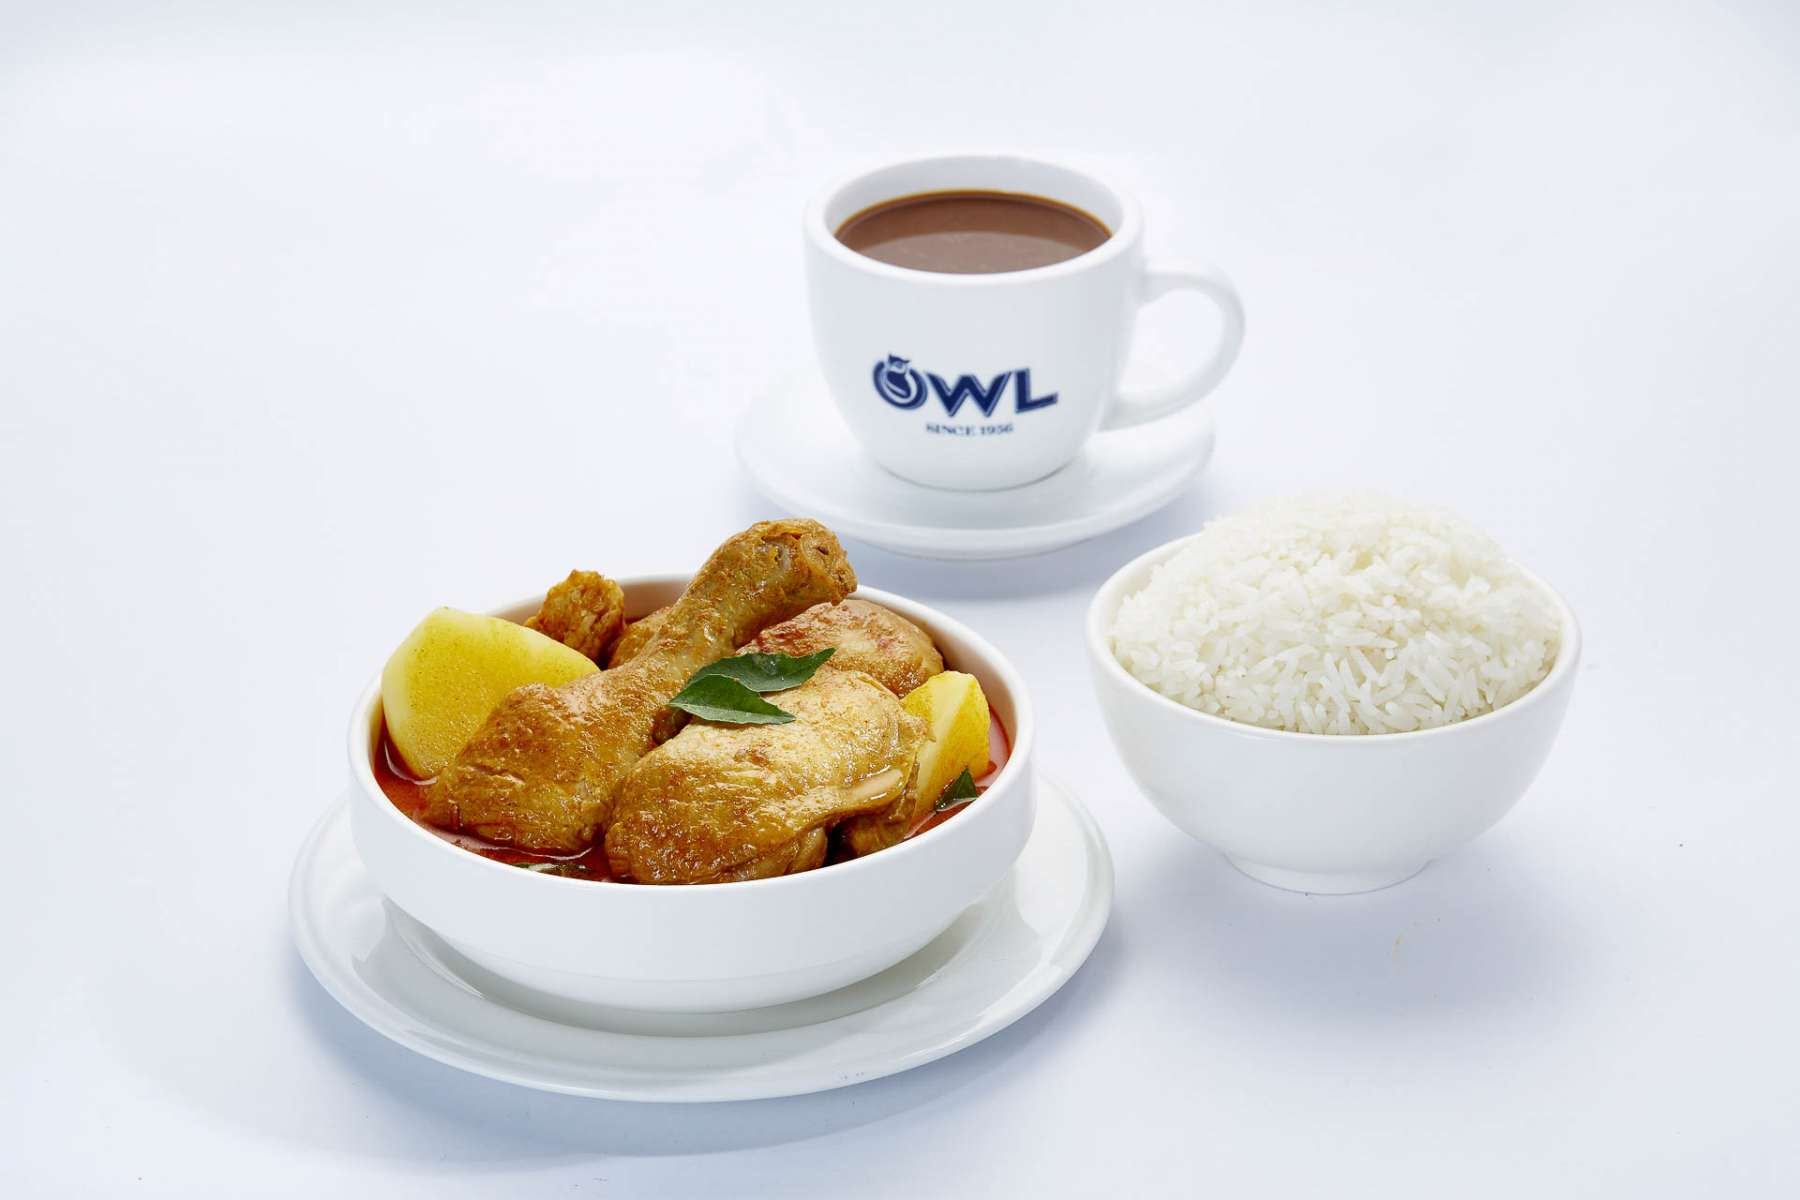 Owl-Curry-Chicken-Rice-Food-Photography-Singapore